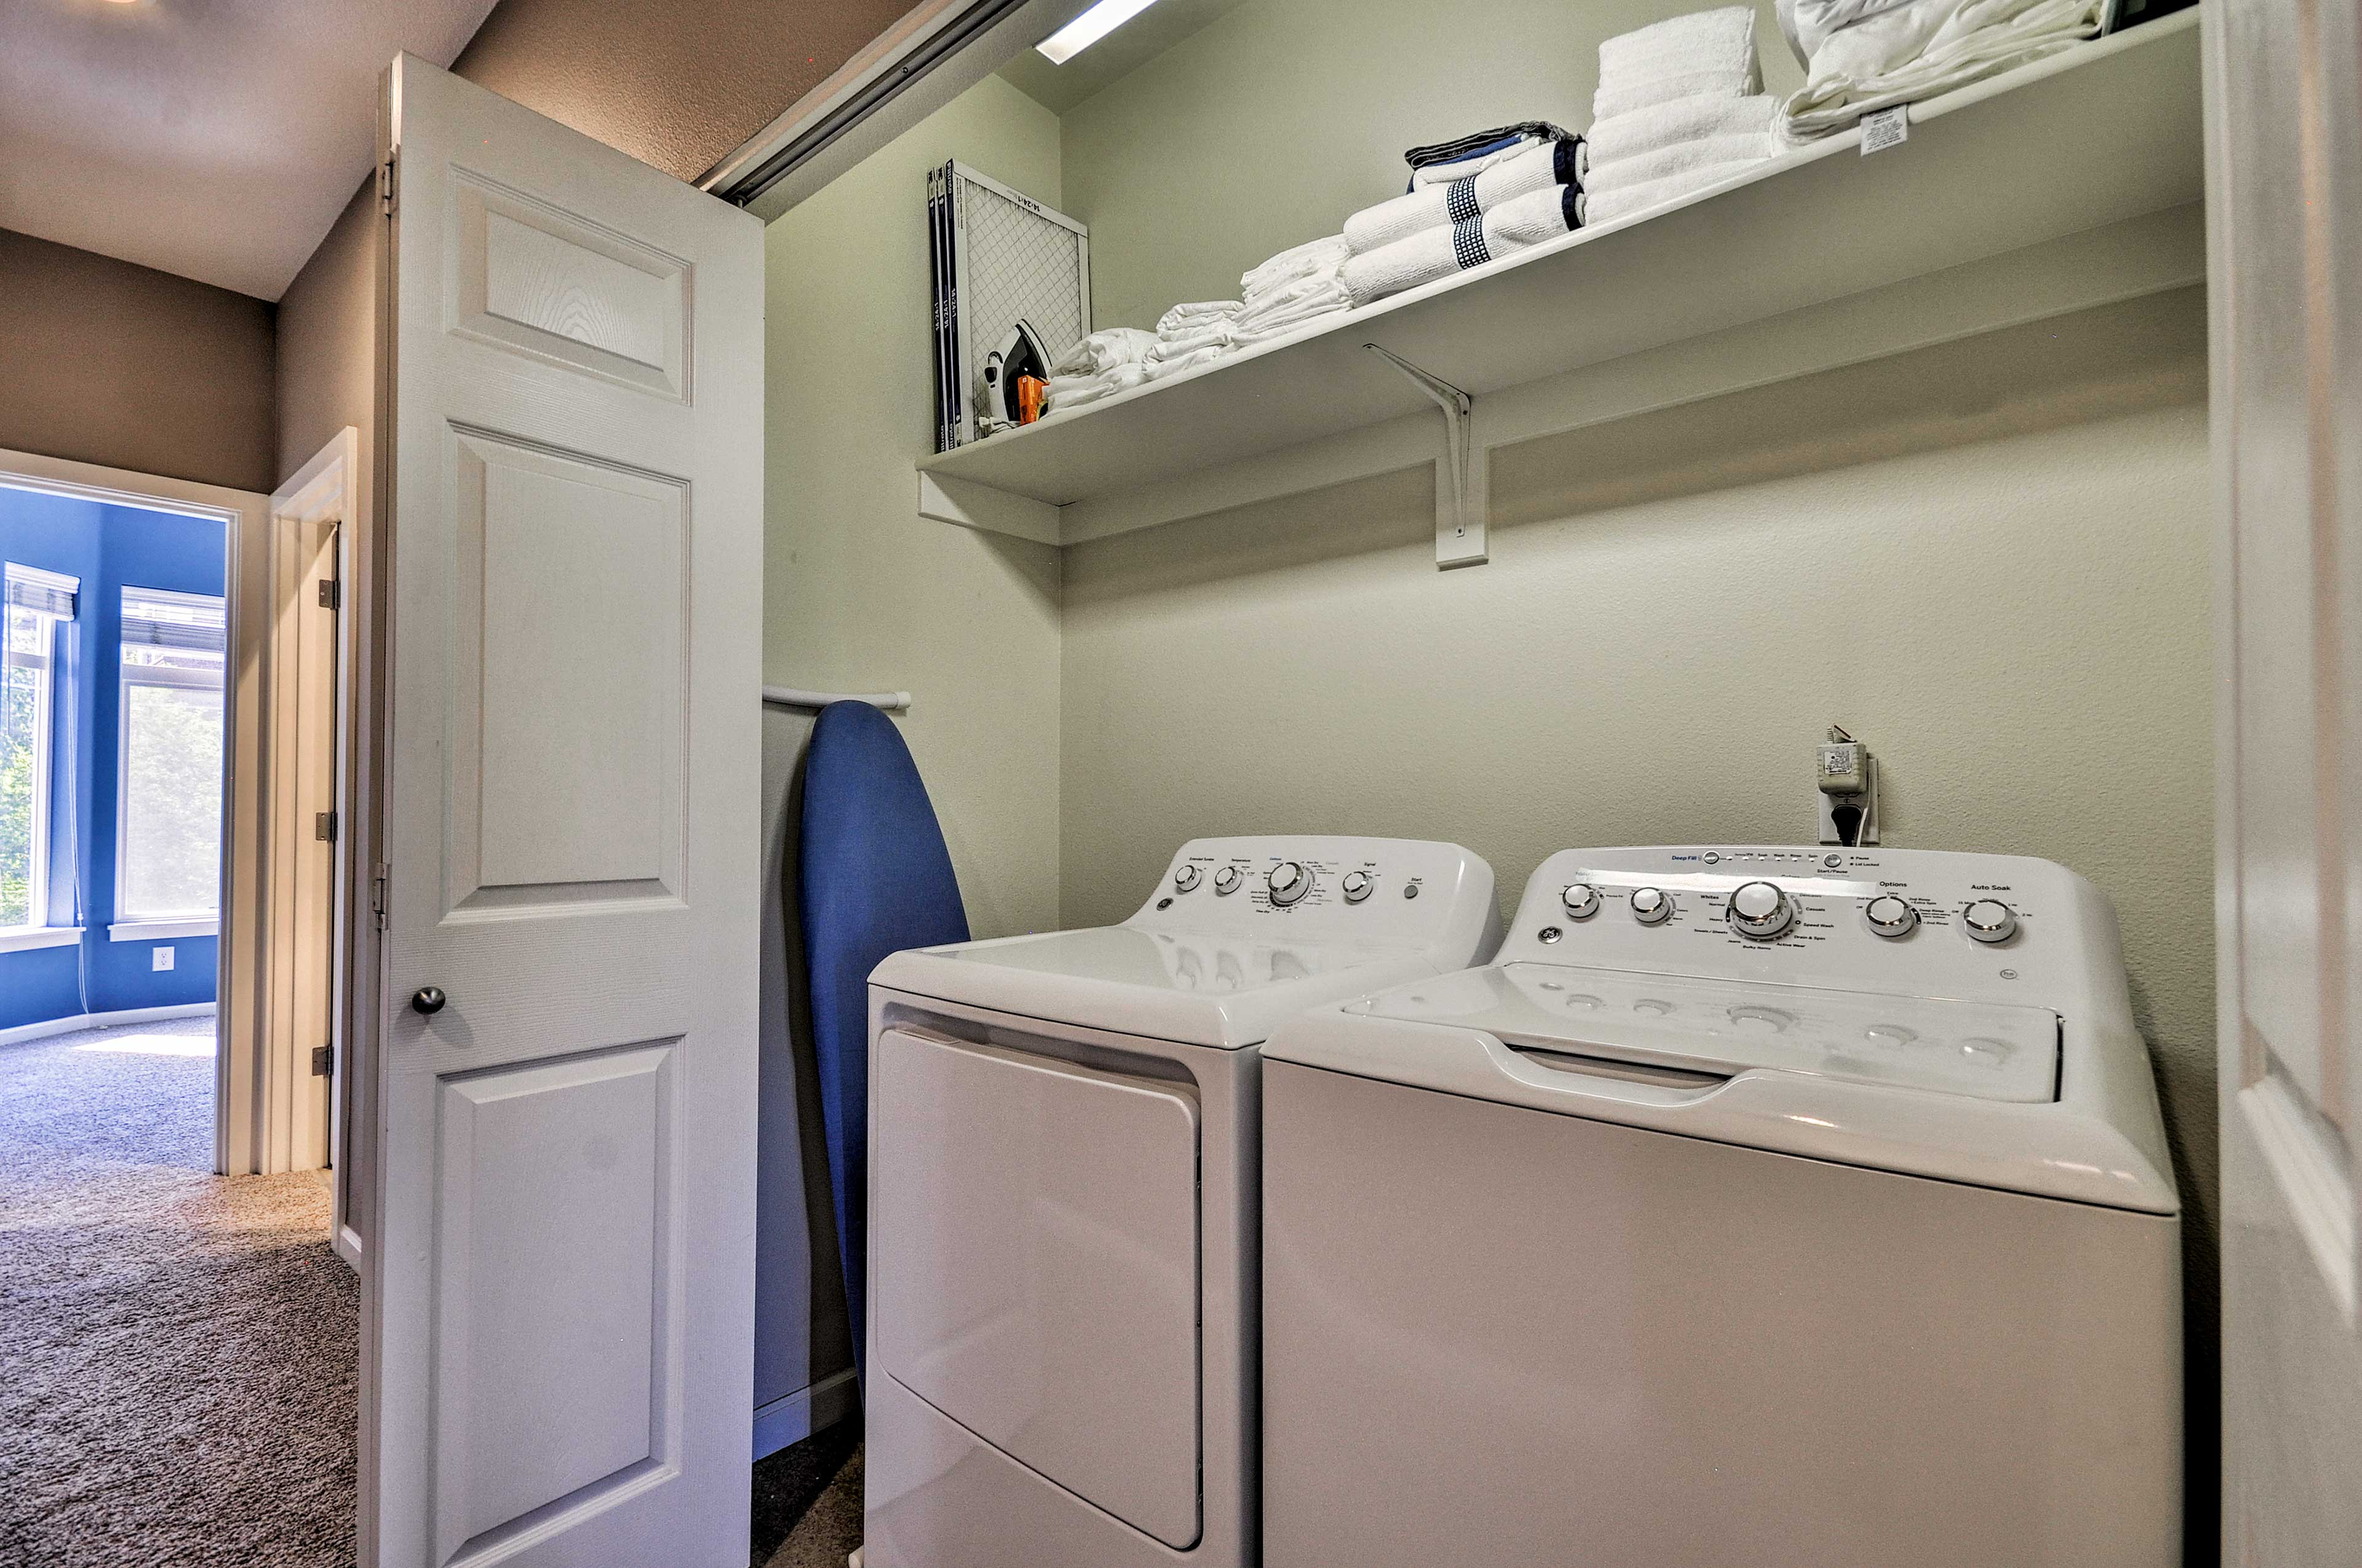 With on-site laundry facilities, you can keep your wardrobe fresh.